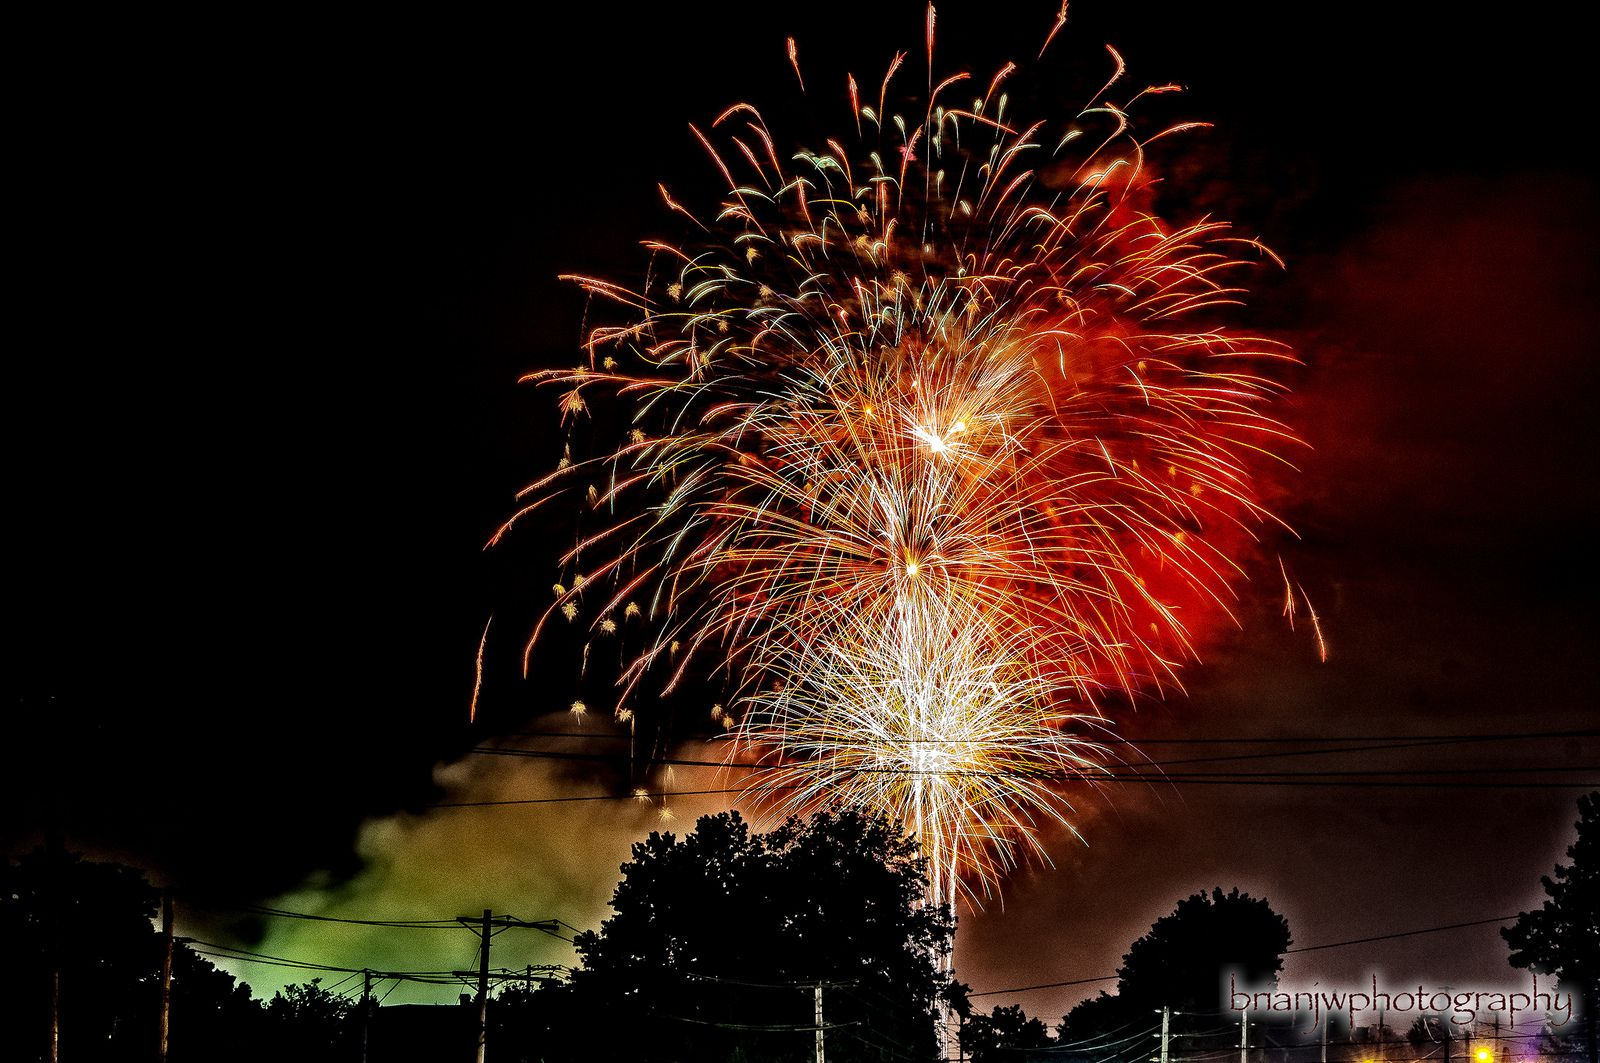 Governor Mifflin Fireworks 2015 | by brianjwphotography